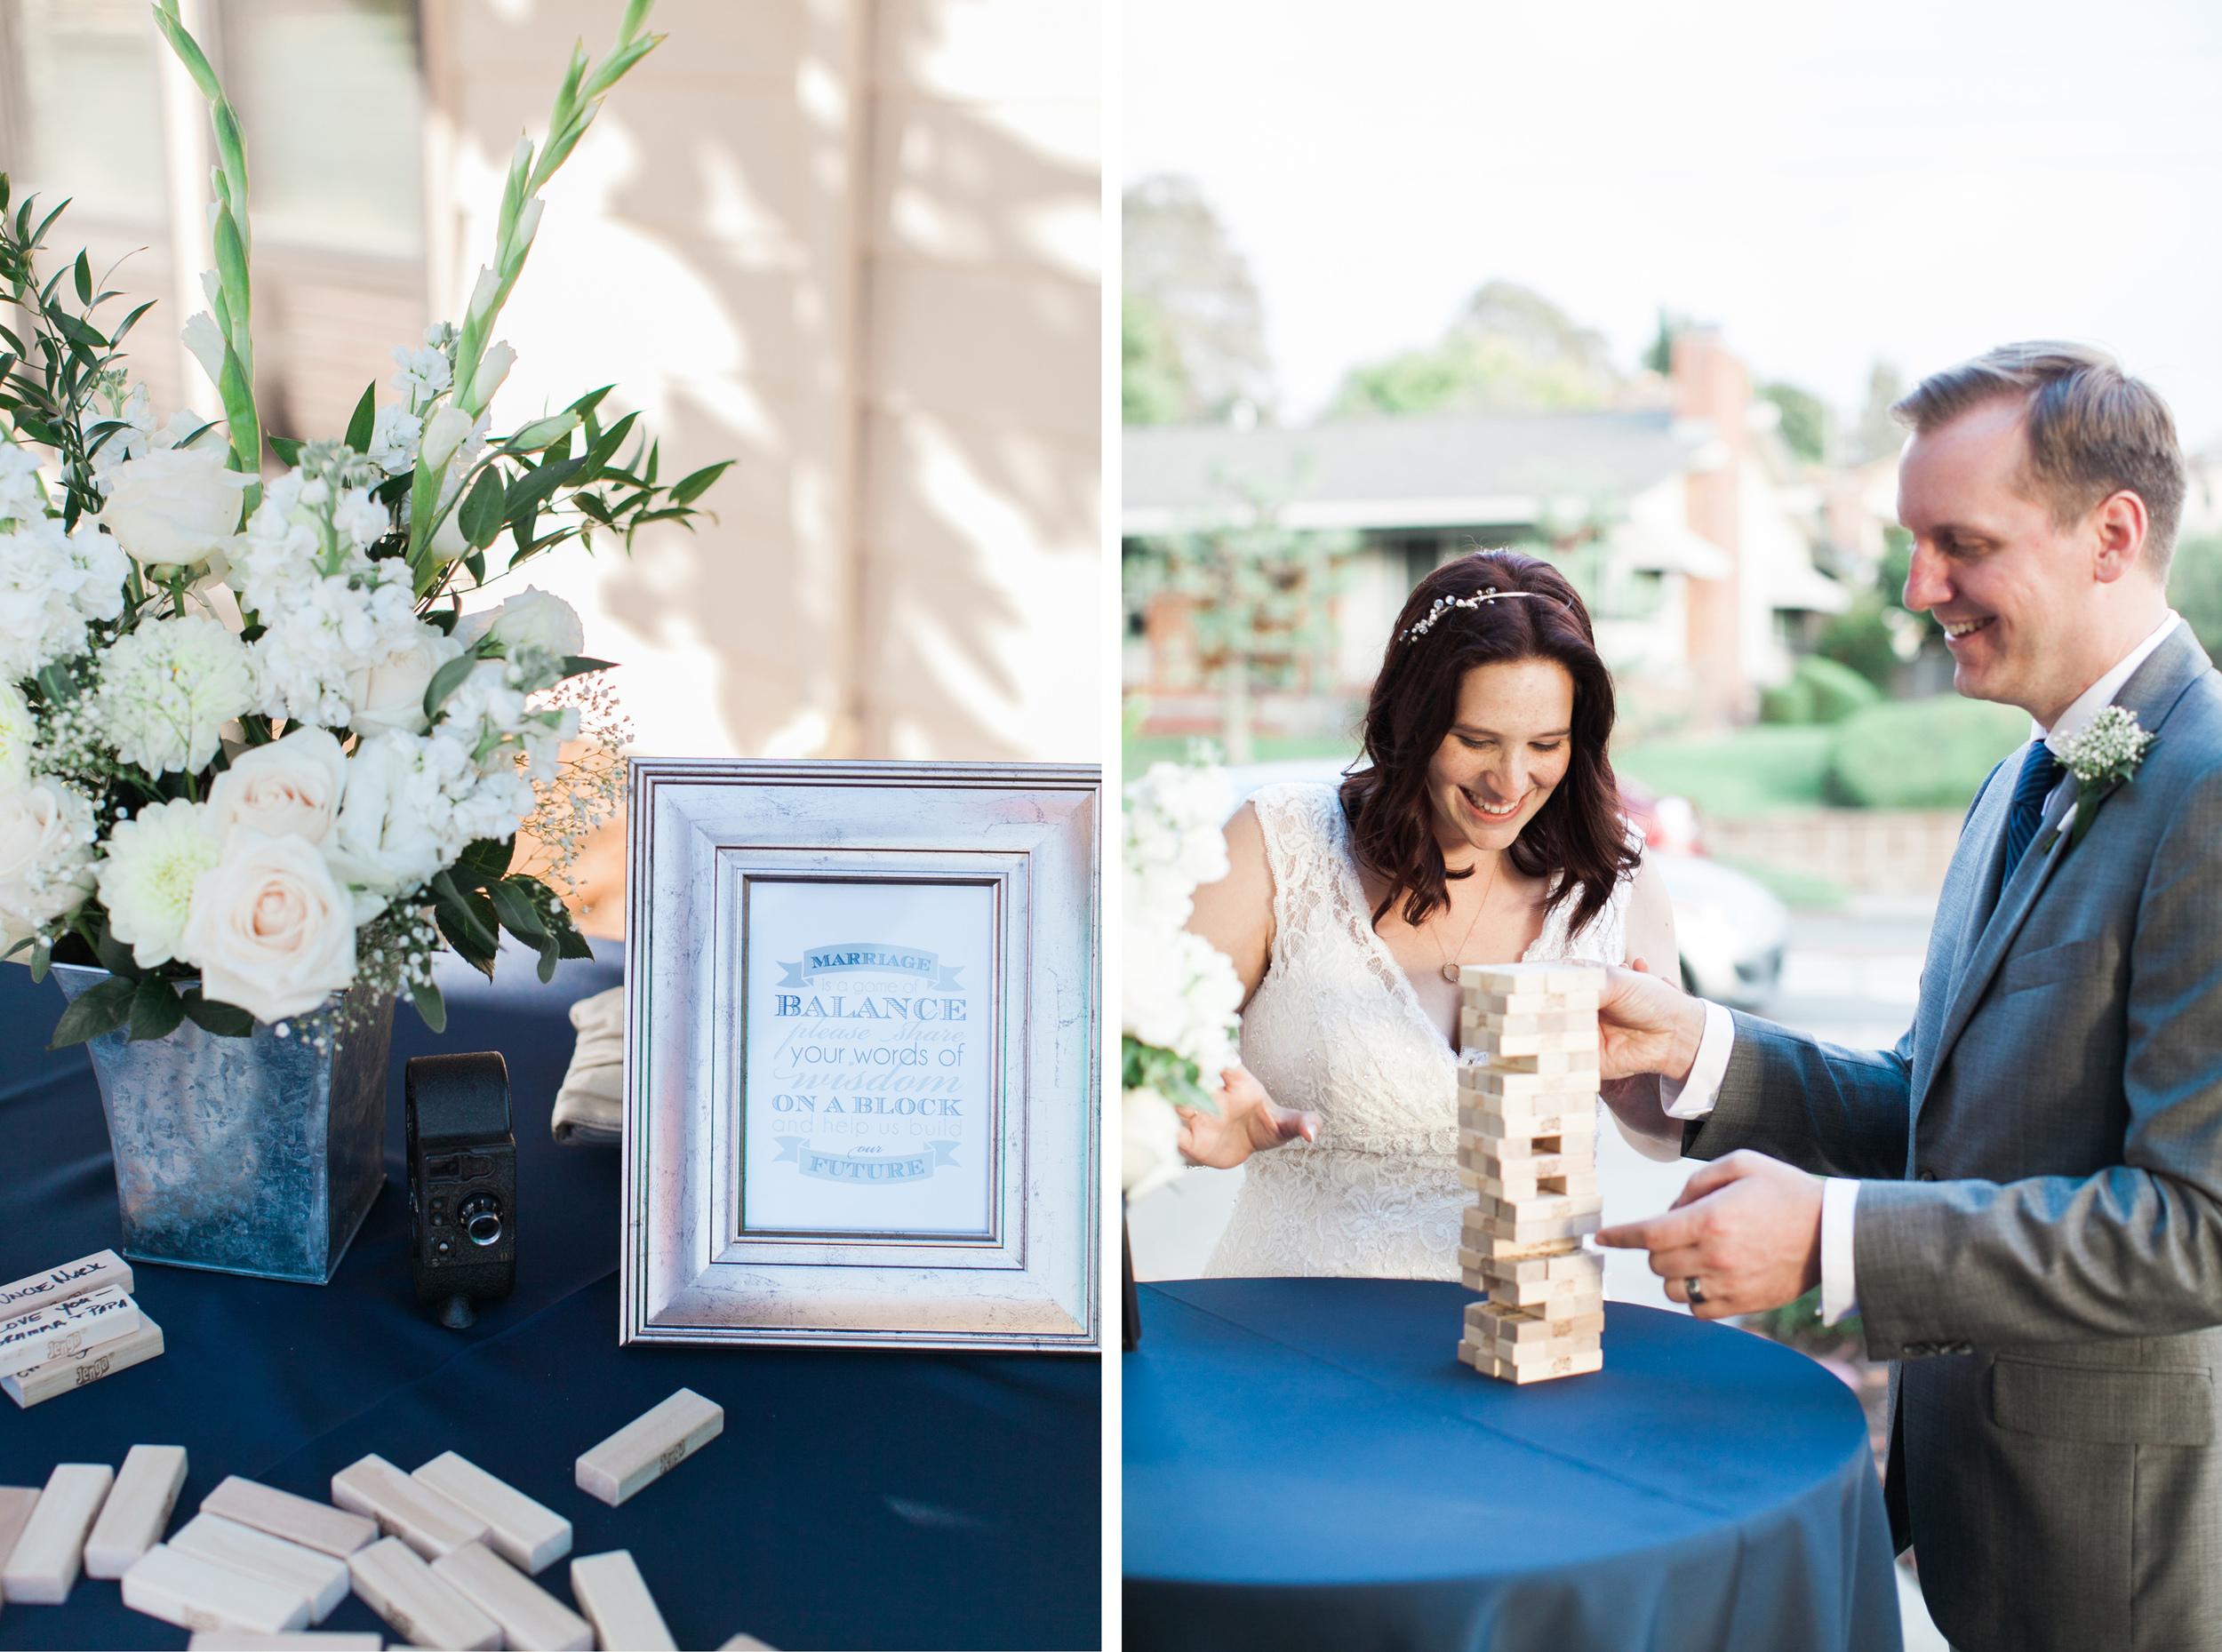 Images by Jessica Kay Photography